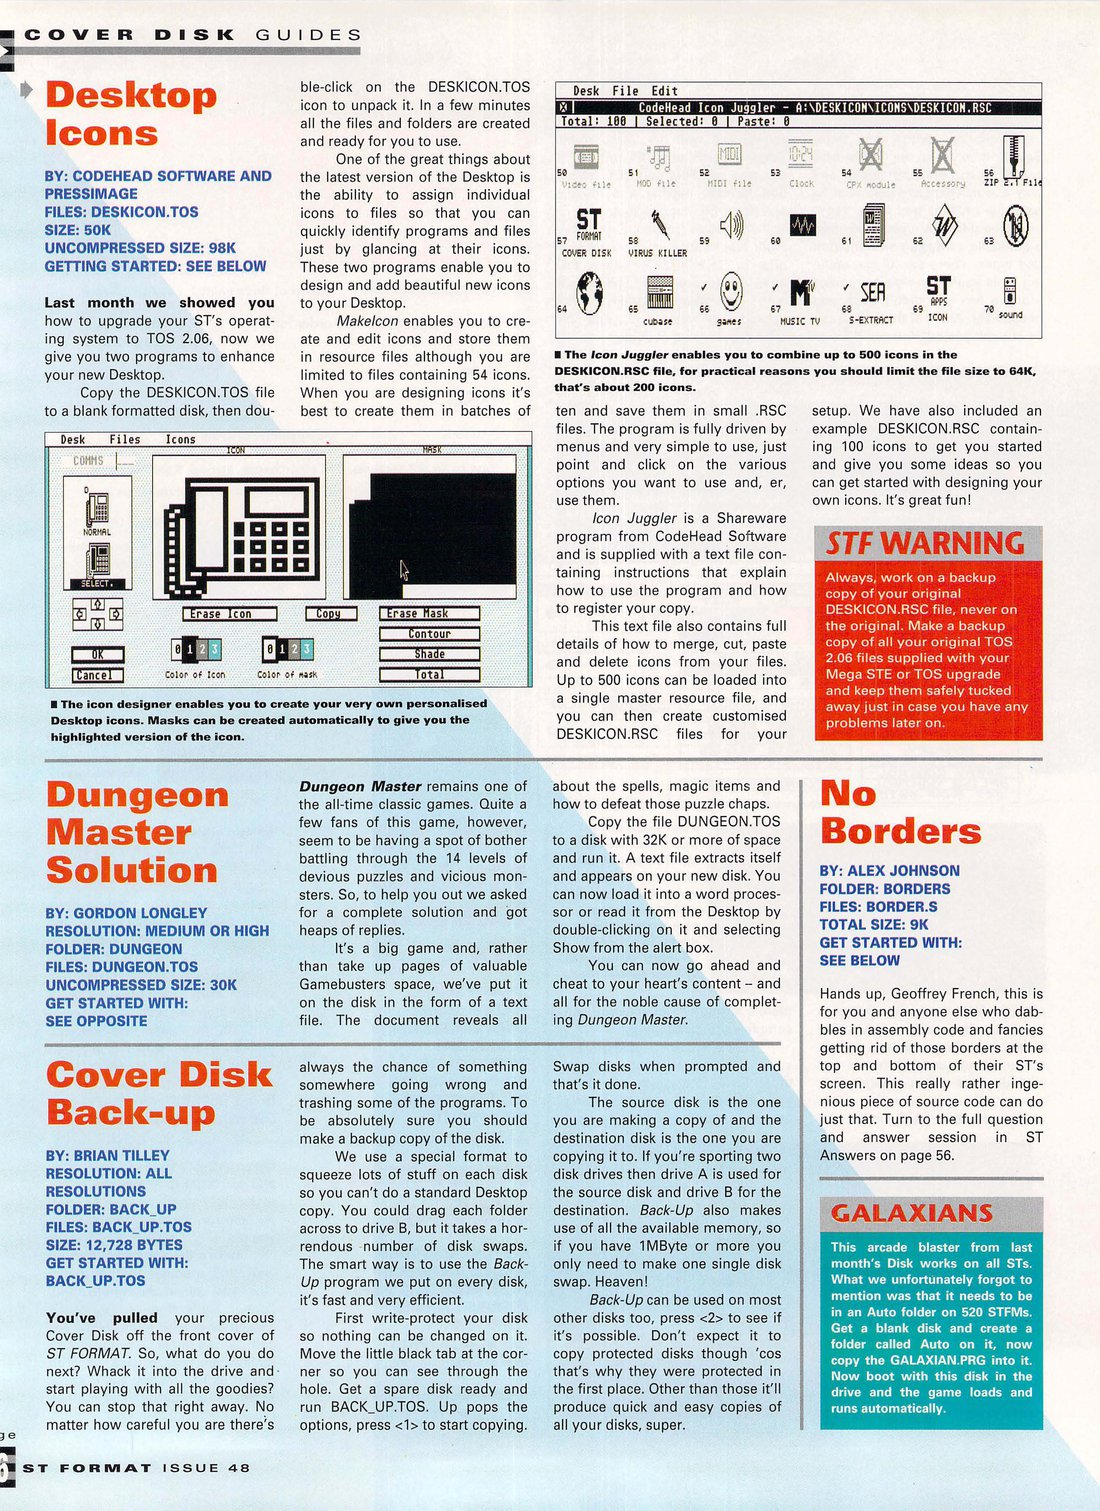 Dungeon Master Hints published in British magazine 'ST Format', Issue #48 July 1993, Page 16